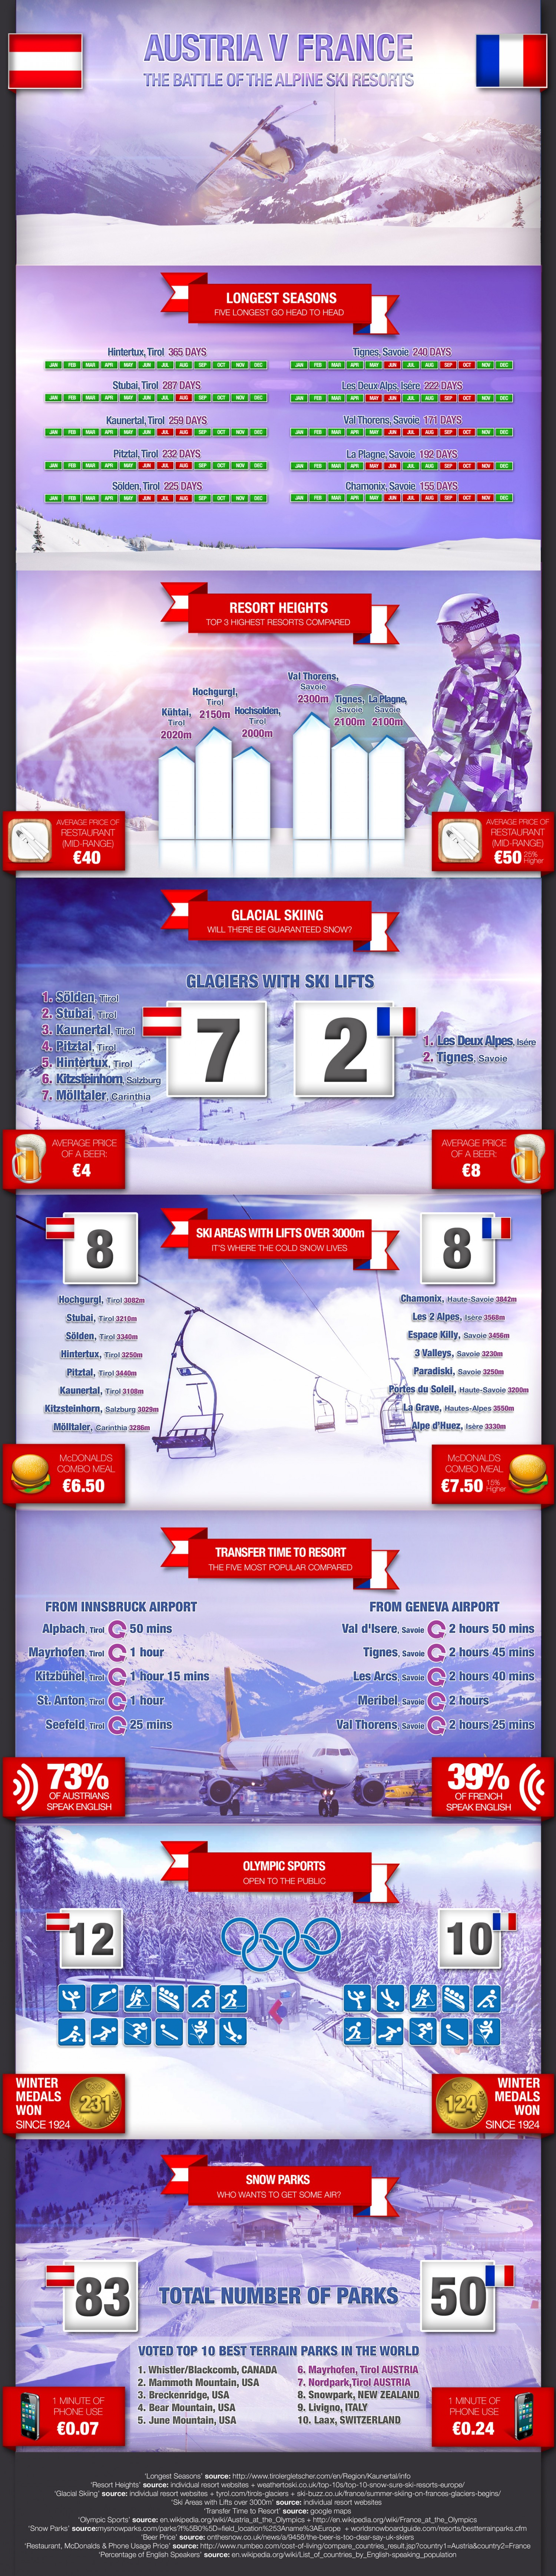 austria-v-france-how-the-skiing-and-snowboarding-stack-up_541c0ccf44db6_w1500